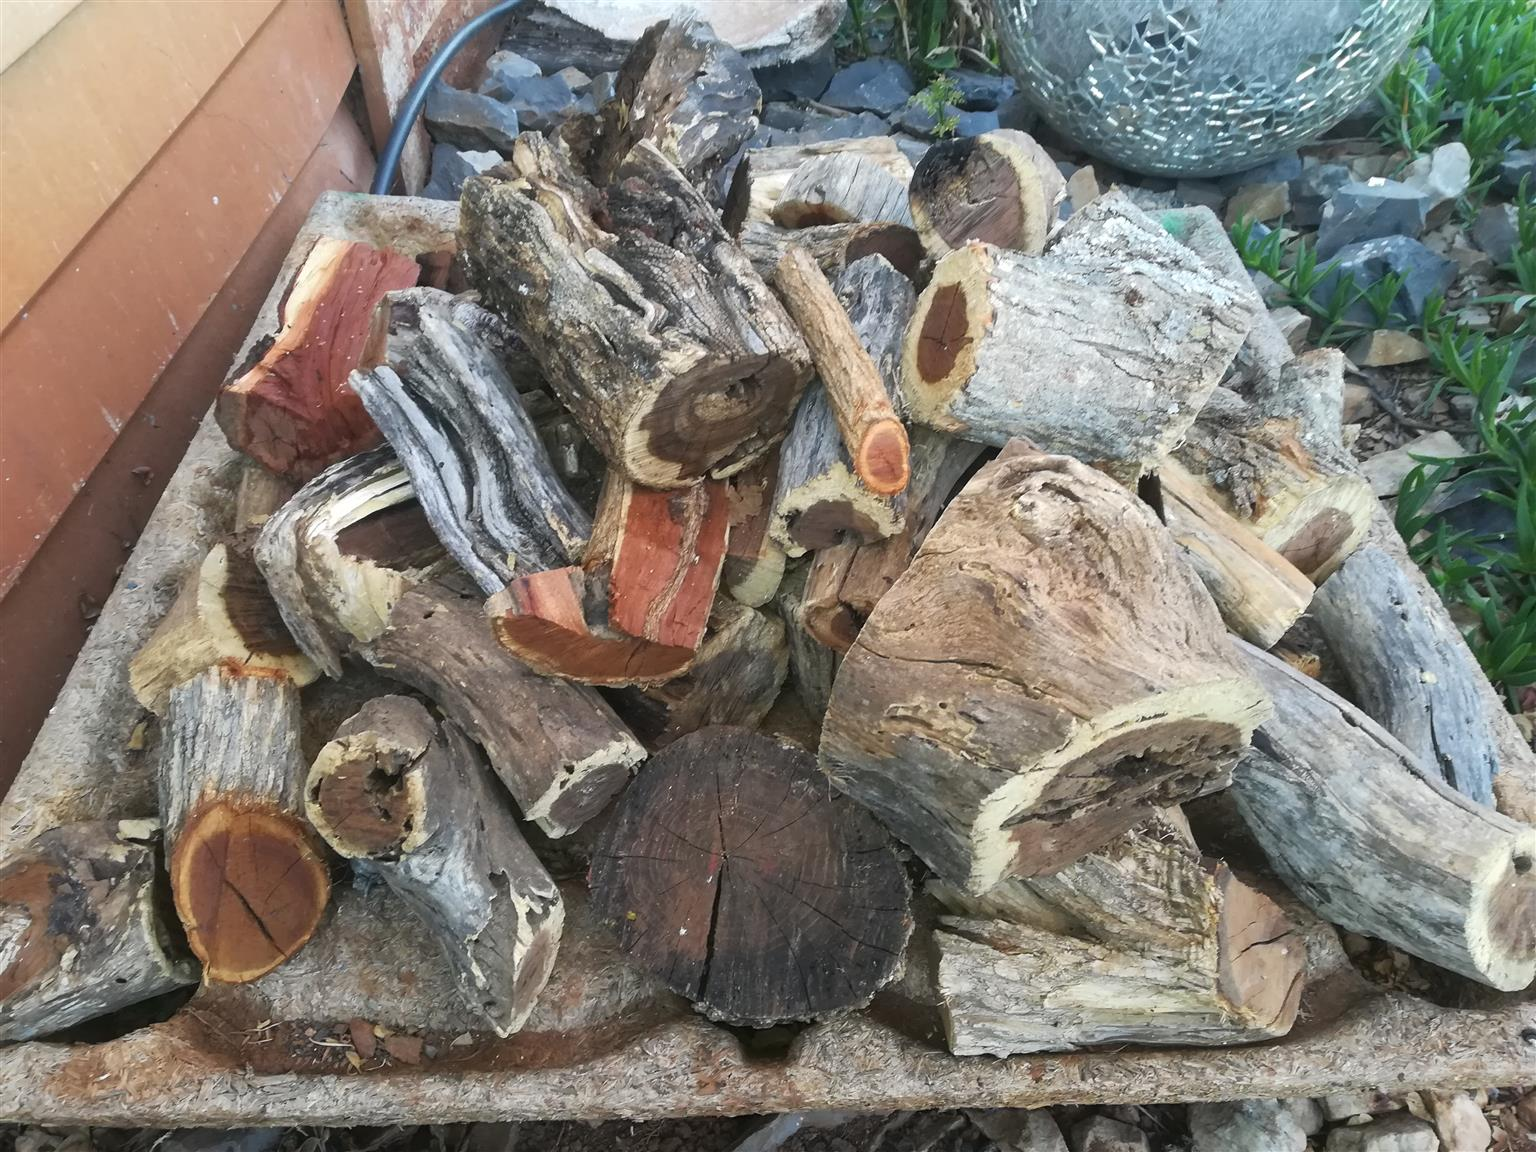 Dry swarthaak braai wood for sale in Centurion